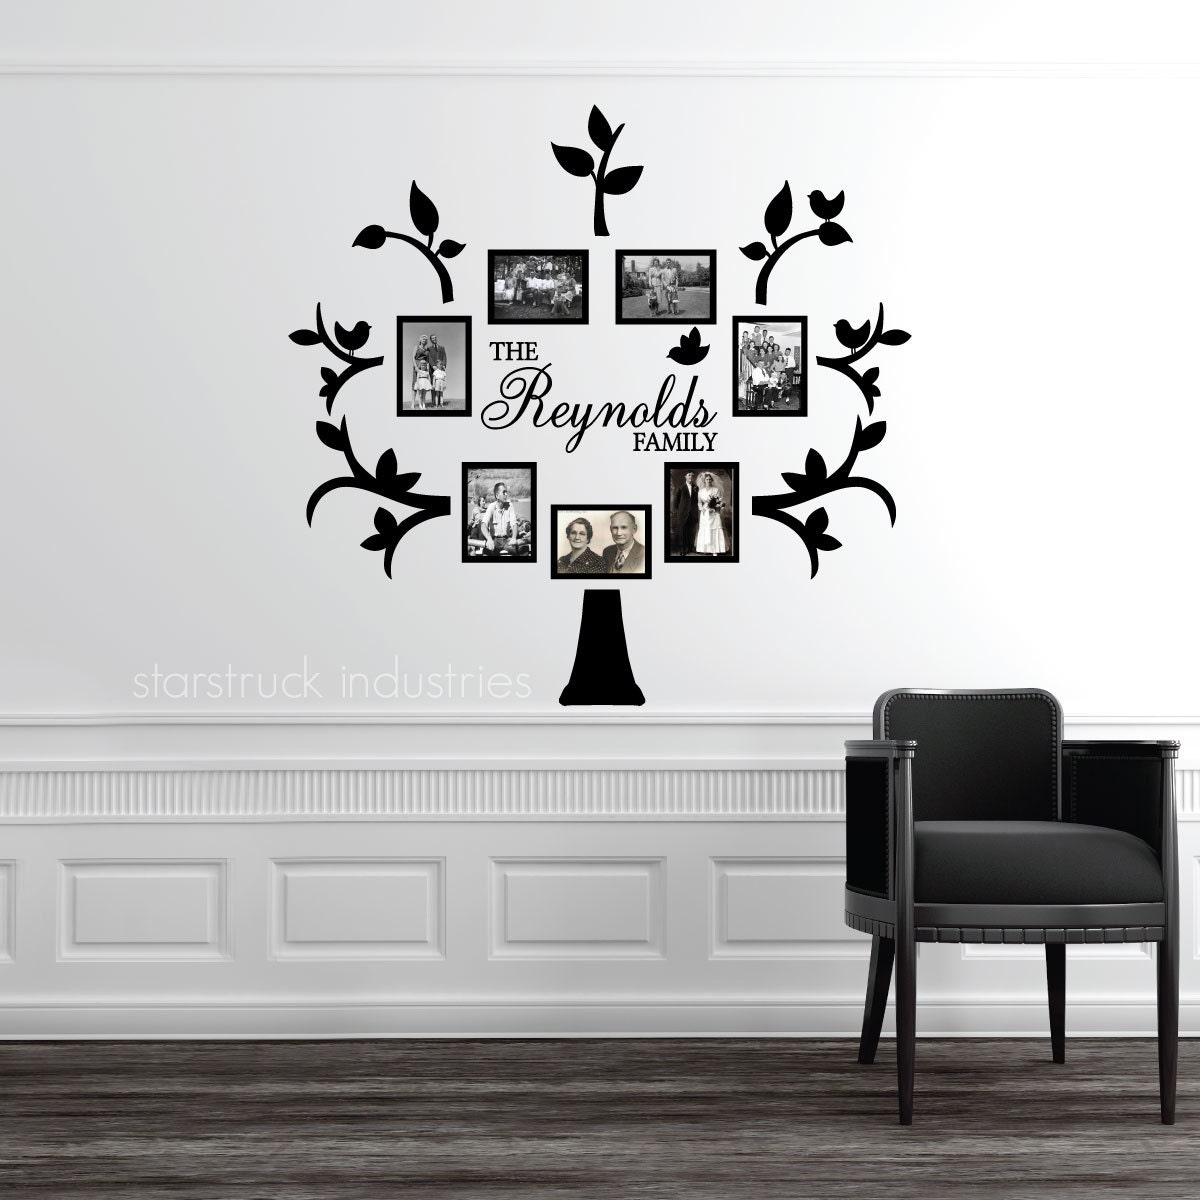 Personalized Last Name Family Tree Wall Decal - Photo Collage Idea - Family Photo Tree Custom Last Name Tree Wall Picture Mural Family Tree  sc 1 st  Etsy Studio & Personalized Last Name Family Tree Wall Decal - Photo Collage Idea ...